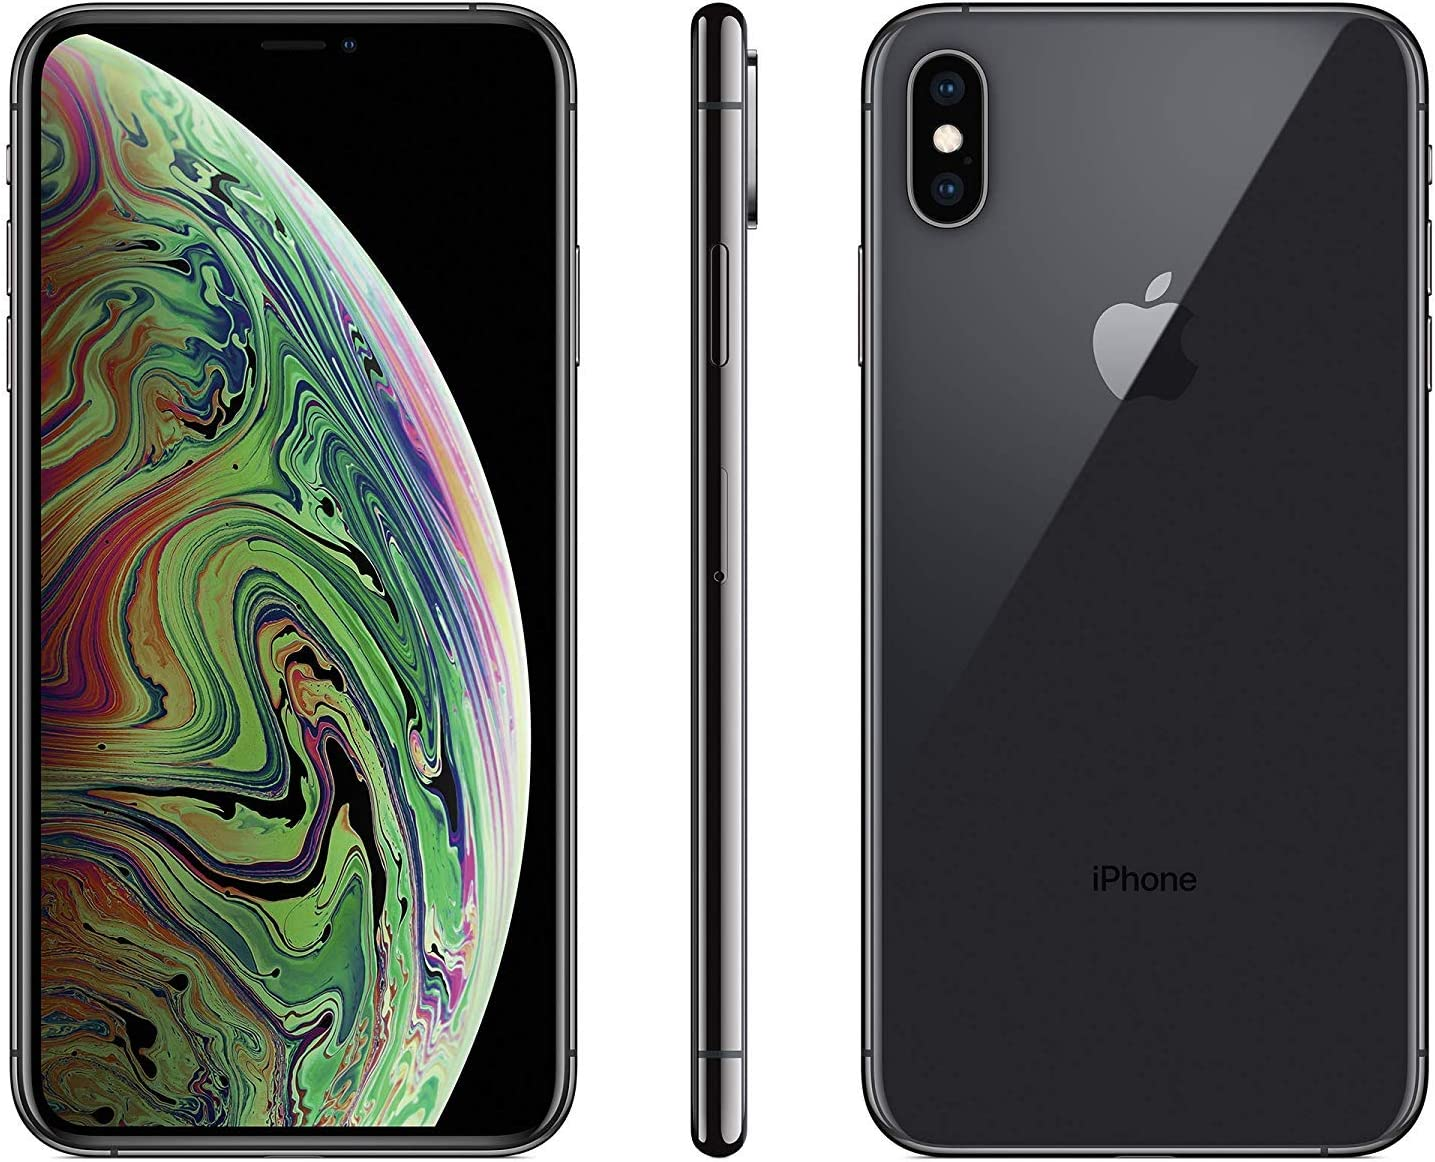 Amazon.com: Apple iPhone Xs Max, 64GB, Space Gray - For Sprint (Renewed)